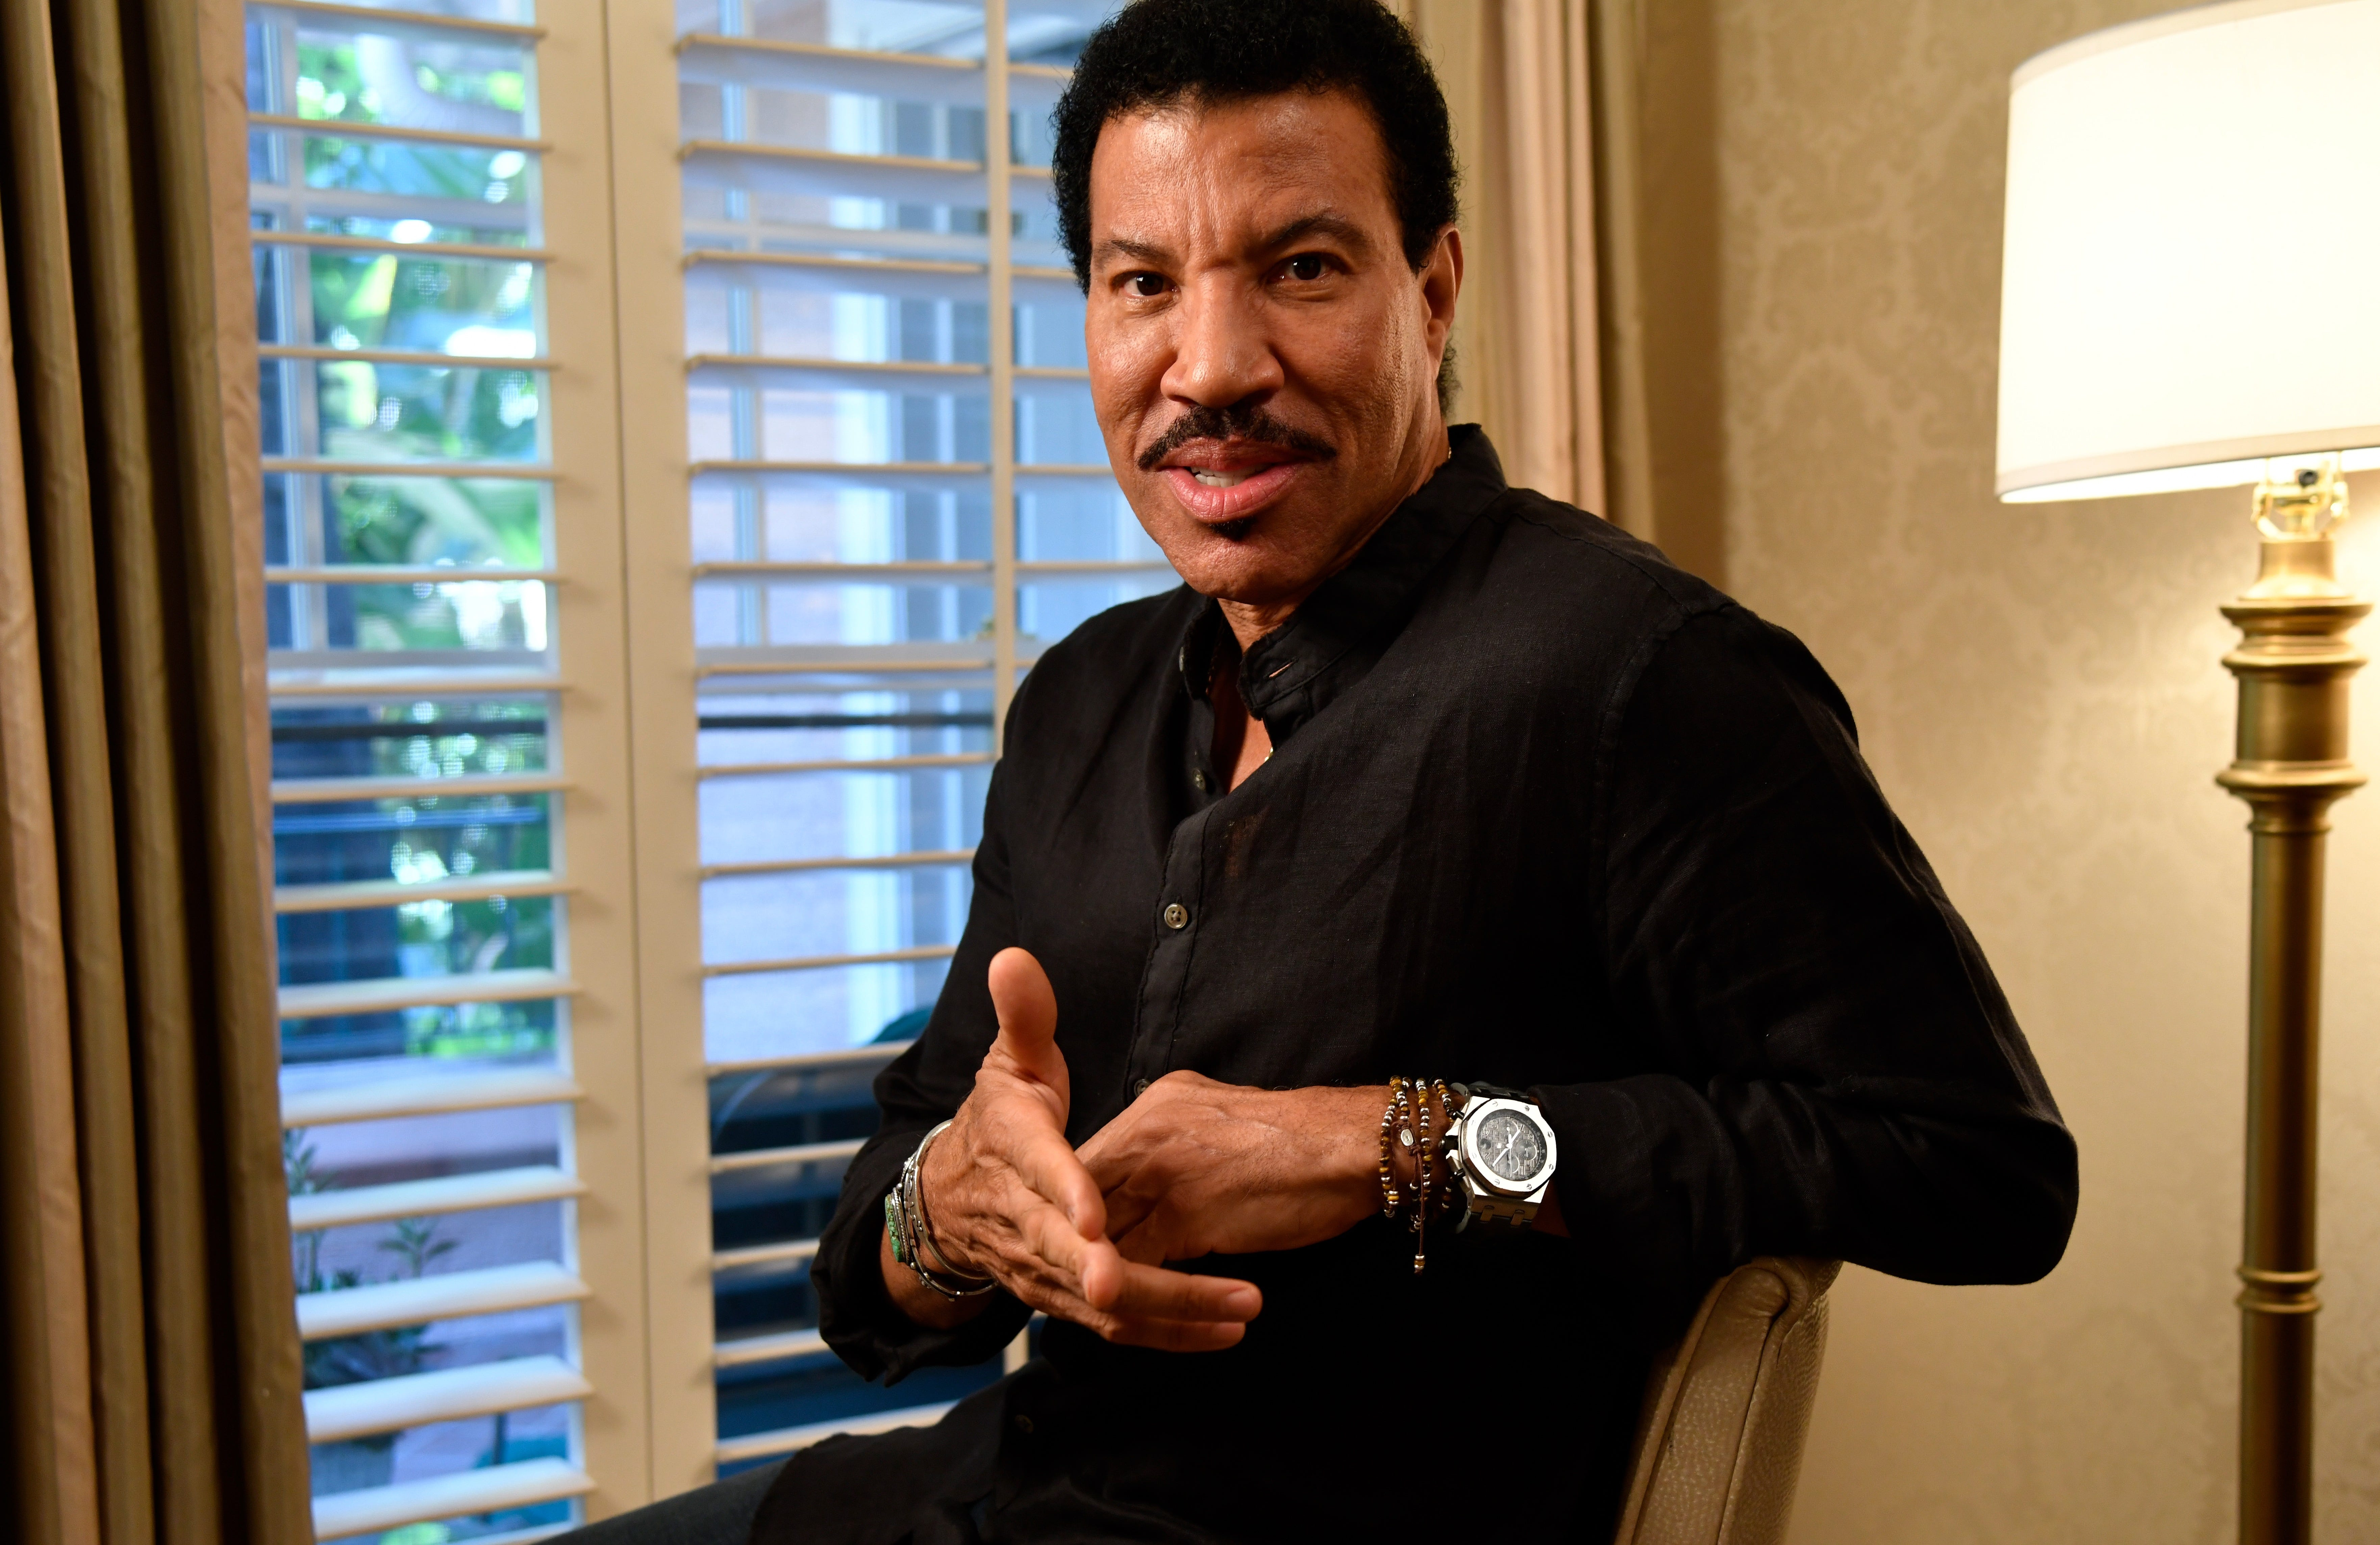 Lionel Richie says 'hello' to tech investing